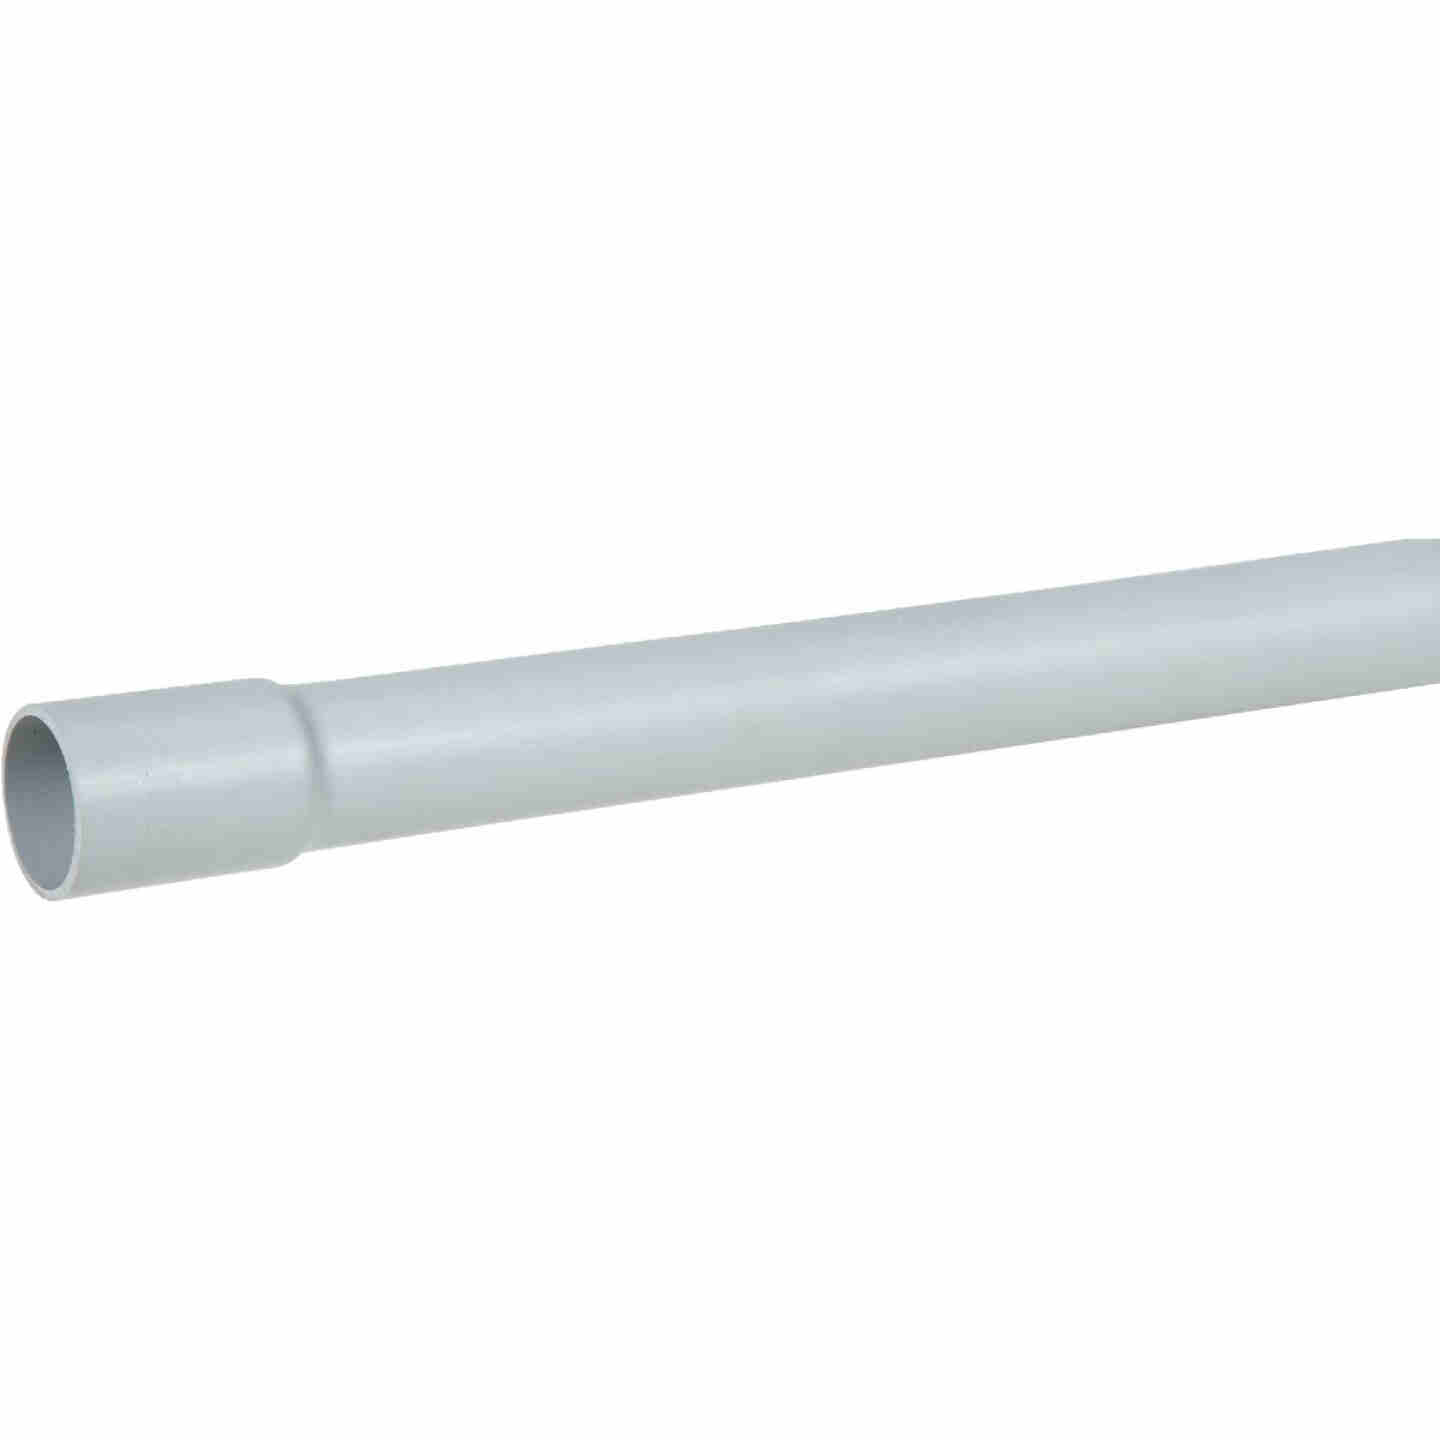 Allied 1-1/2 In. x 10 Ft. Schedule 40 PVC Conduit Image 1